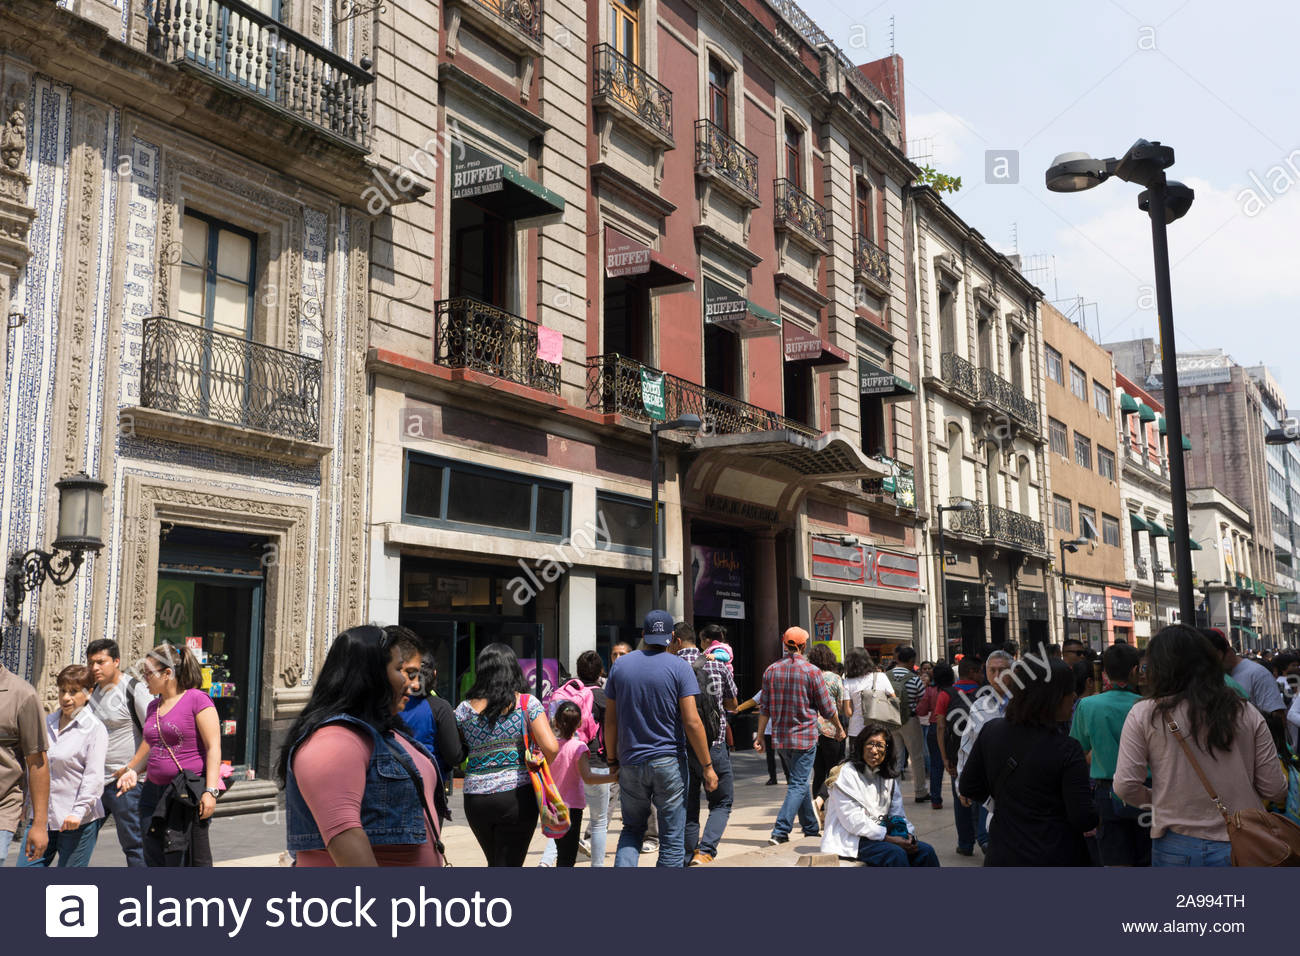 A block in the historic center of Mexico City on a weekend. Stock Photo